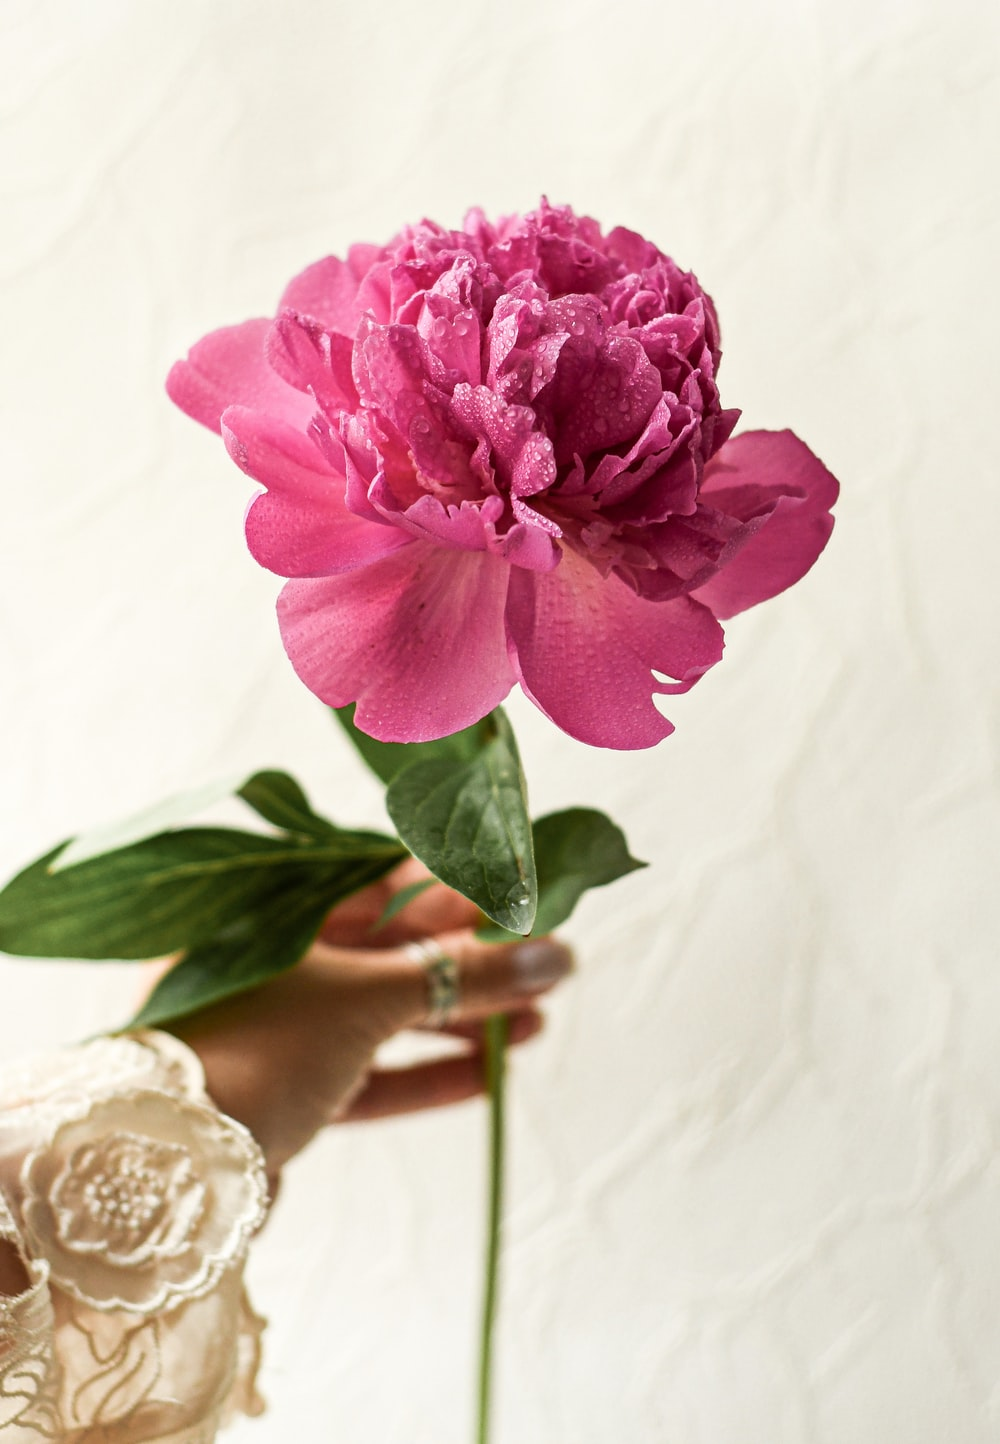 pink rose in bloom on womans hand